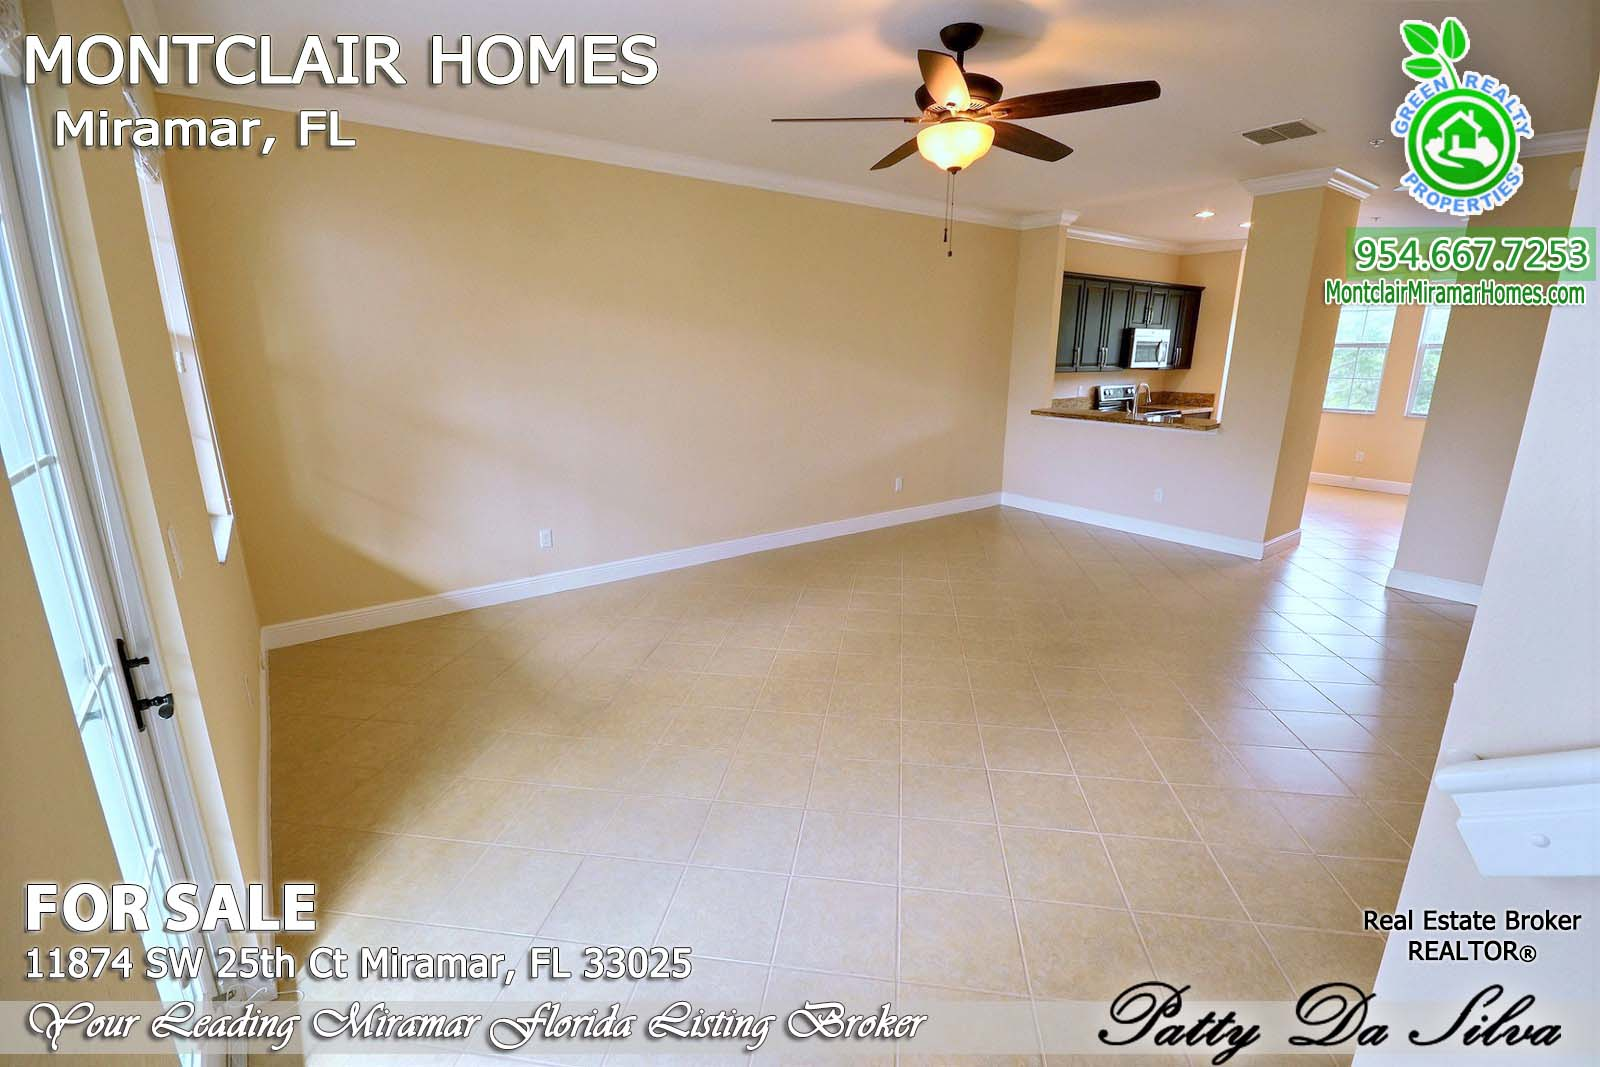 11874 SW 25 CT, Miramar FL 33025 - Montclair (21) - Copy